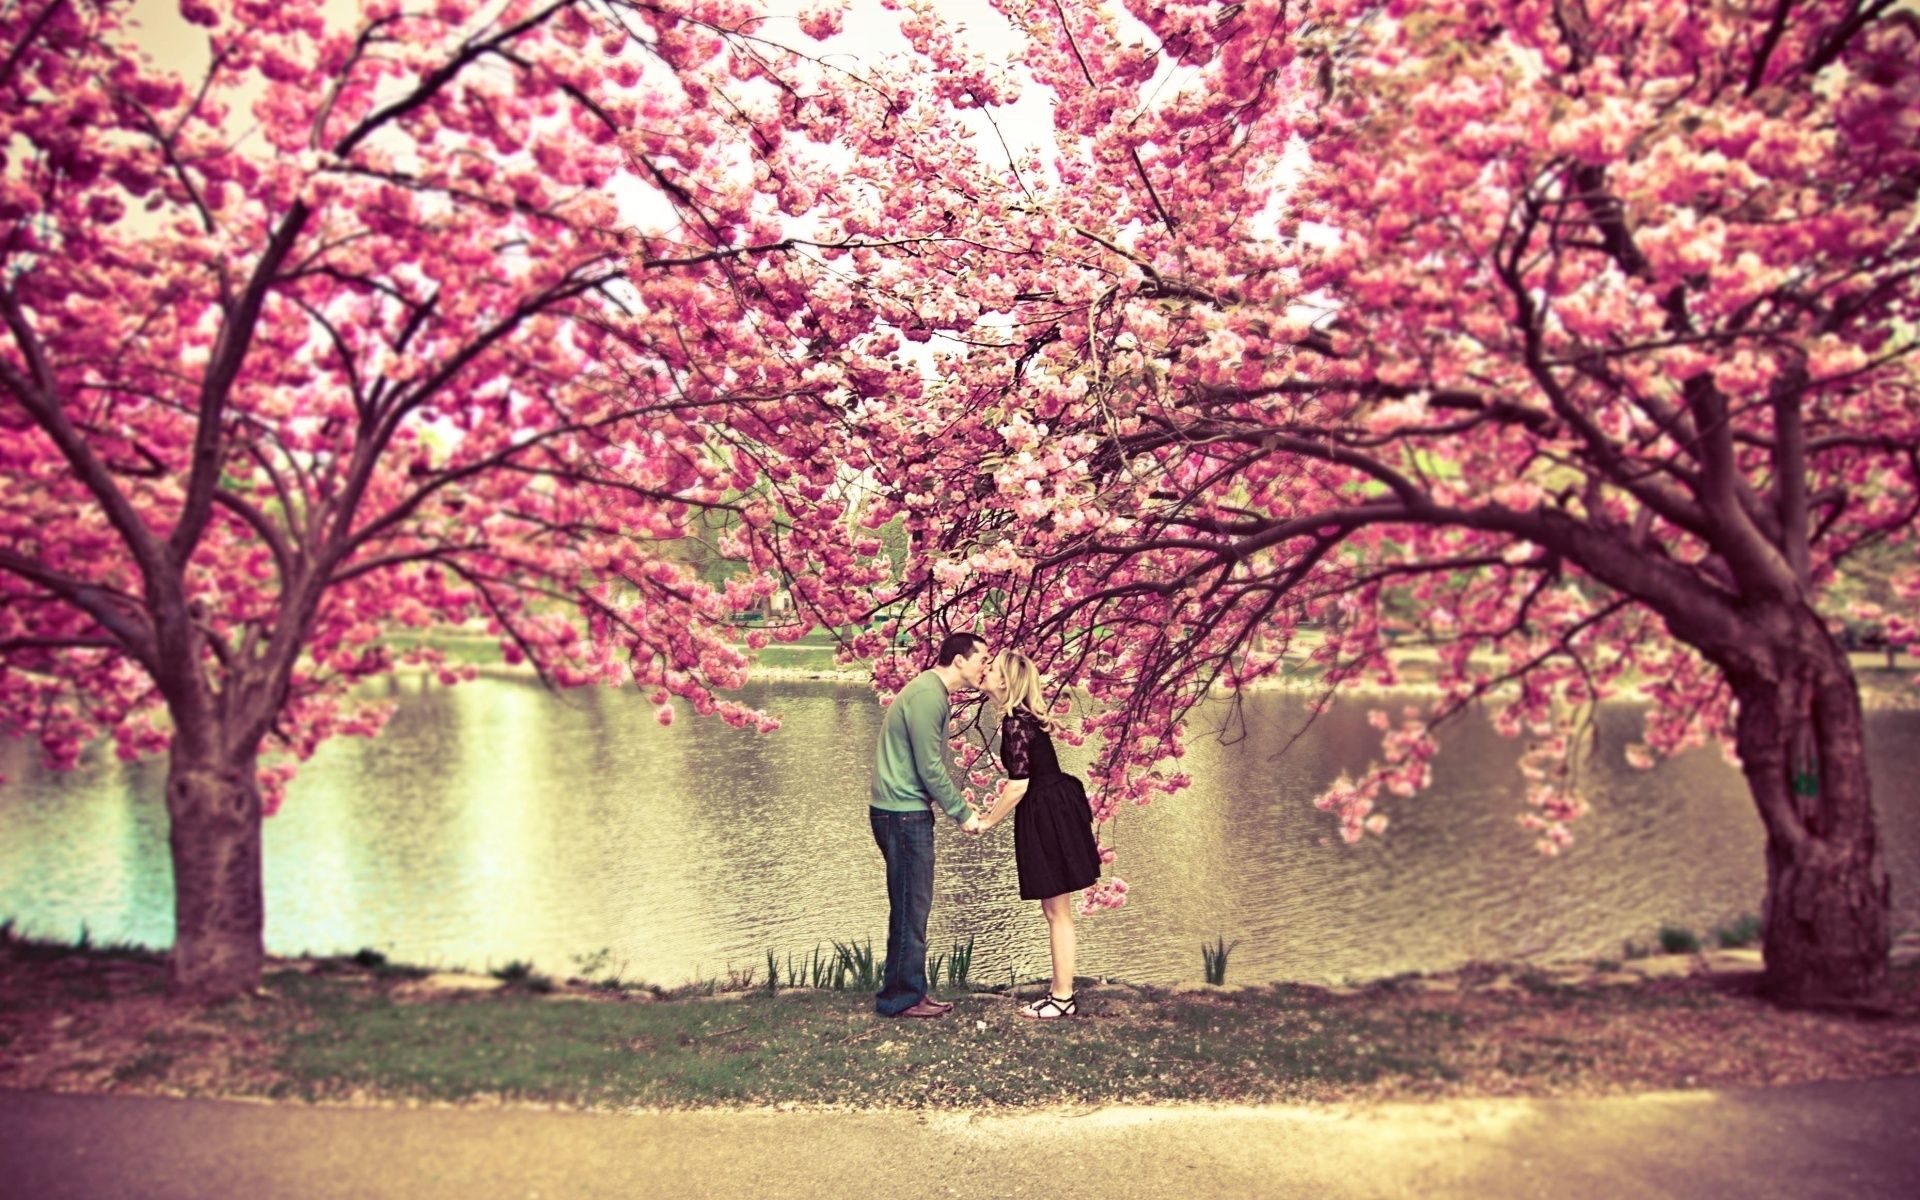 Lovely Cherry Blossom Wallpapers to brighten your Desktop